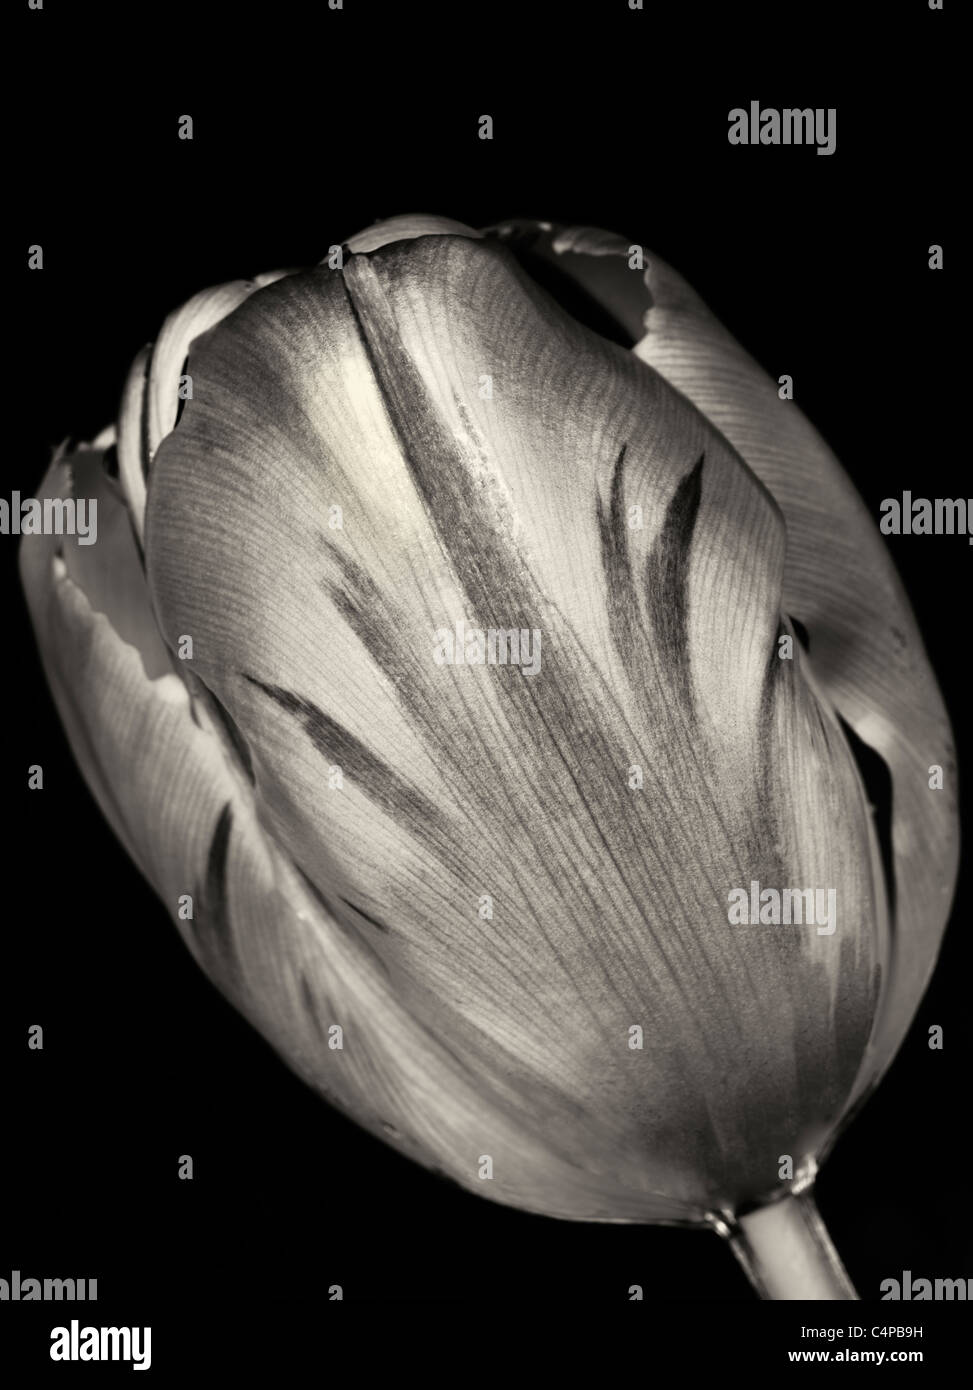 Tulip as seen from underwater. - Stock Image